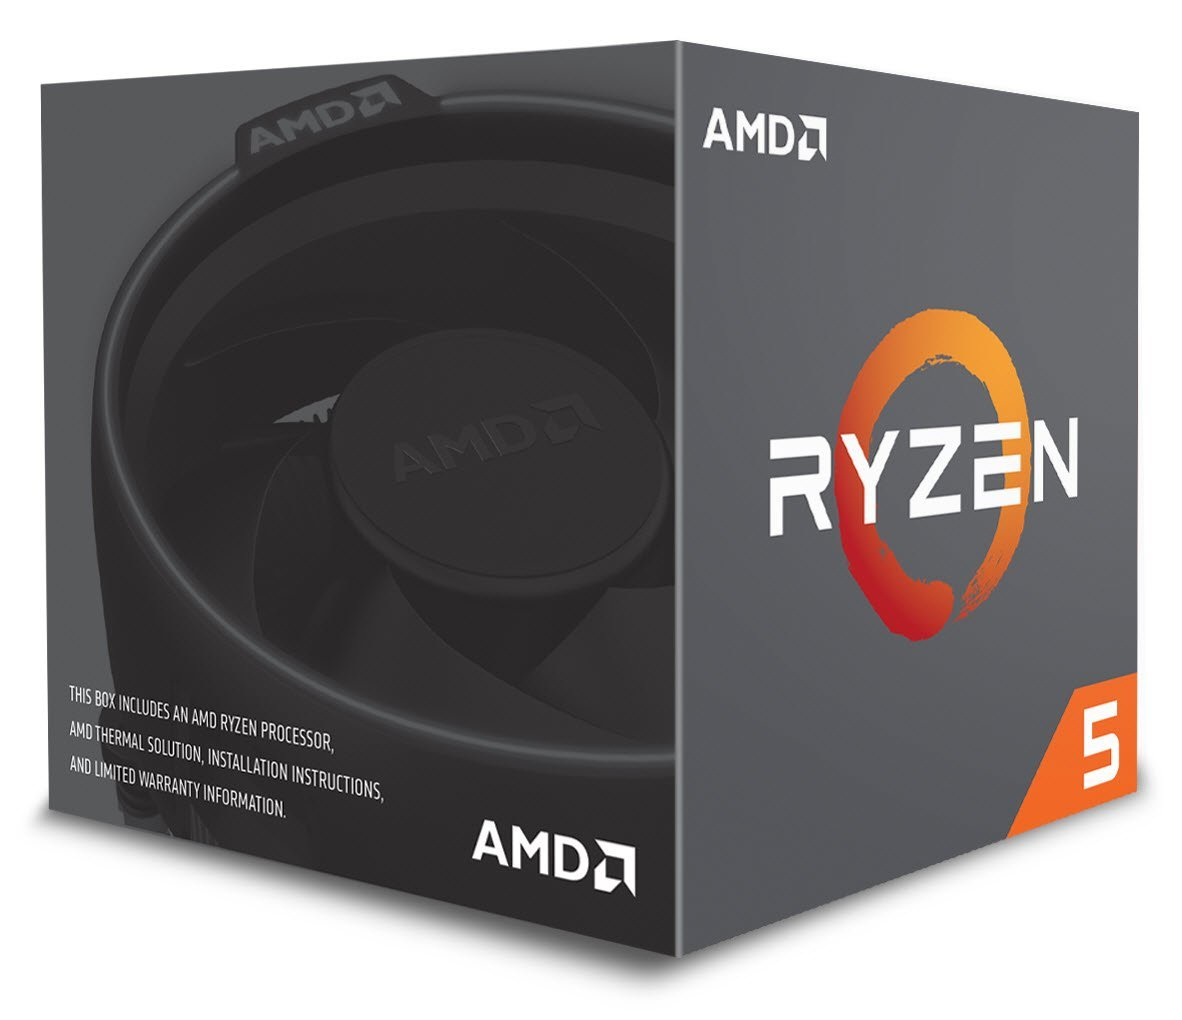 AMD YD2600BBAFBOX RYZEN 5 2600 3.4GHZ 16MB L3 BOX PROCESSOR